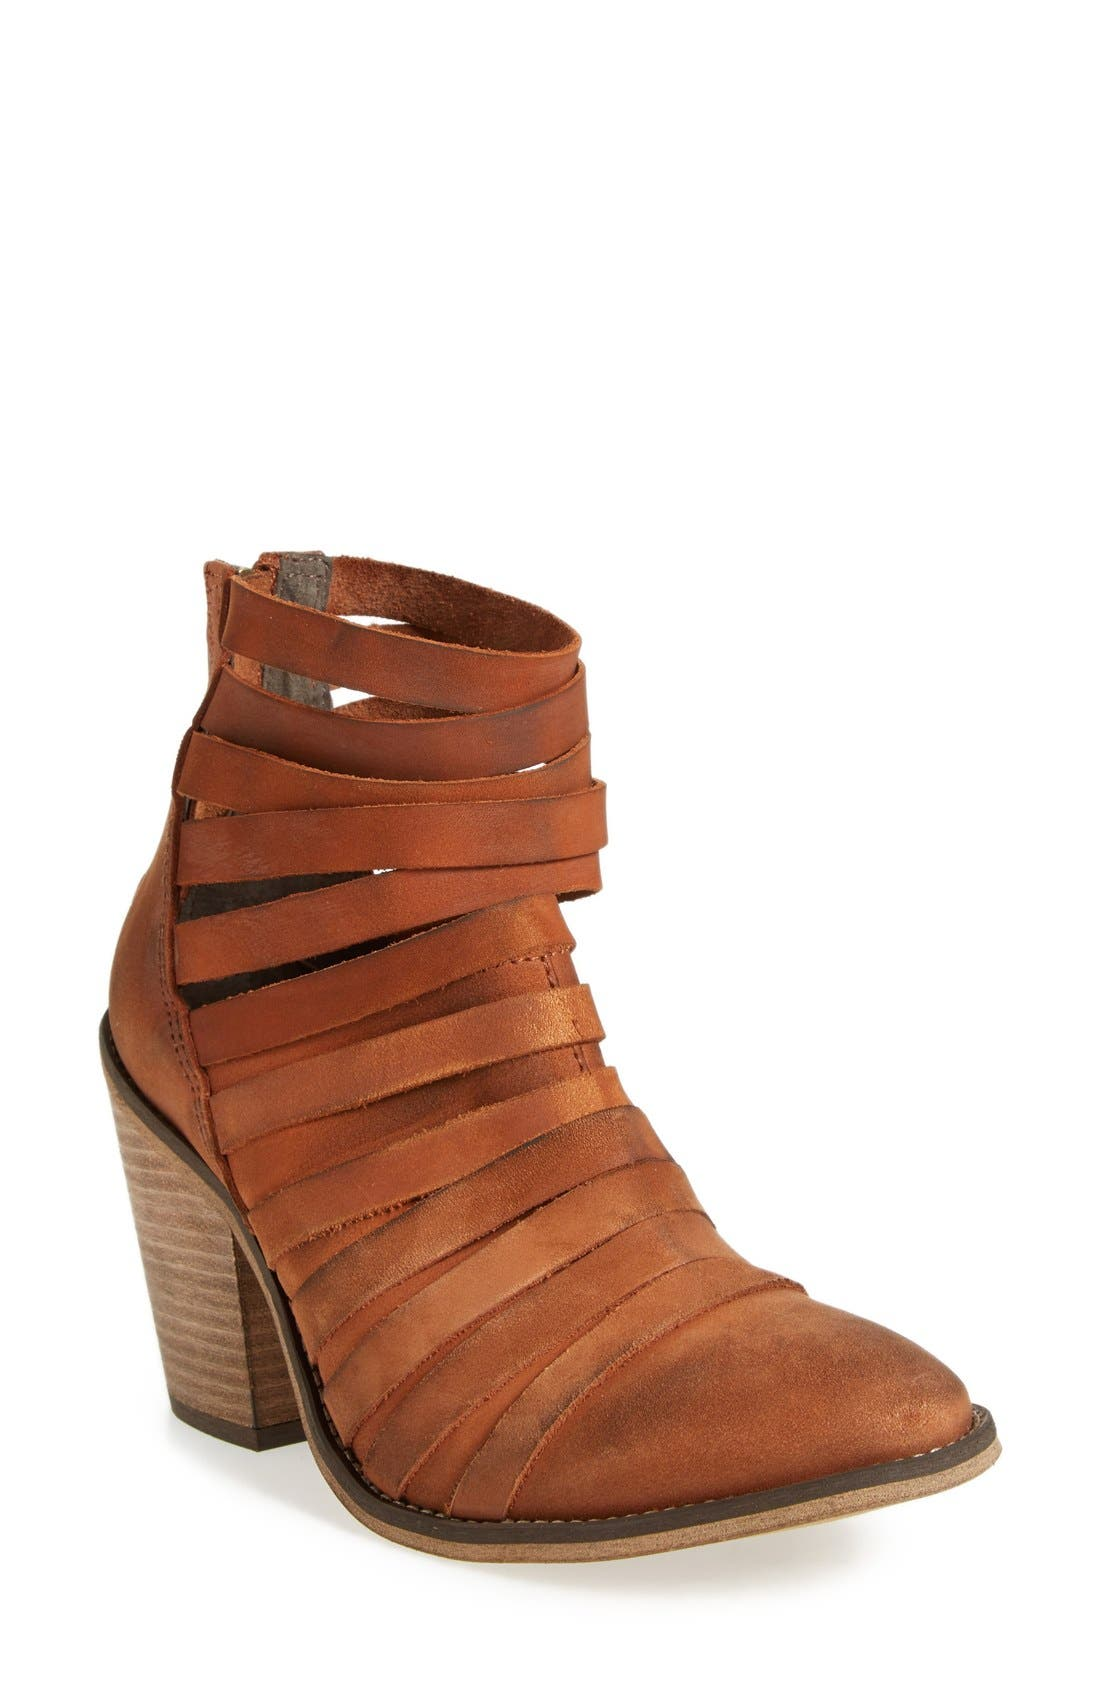 'Hybrid' Strappy Leather Bootie,                             Main thumbnail 1, color,                             Terracotta Leather